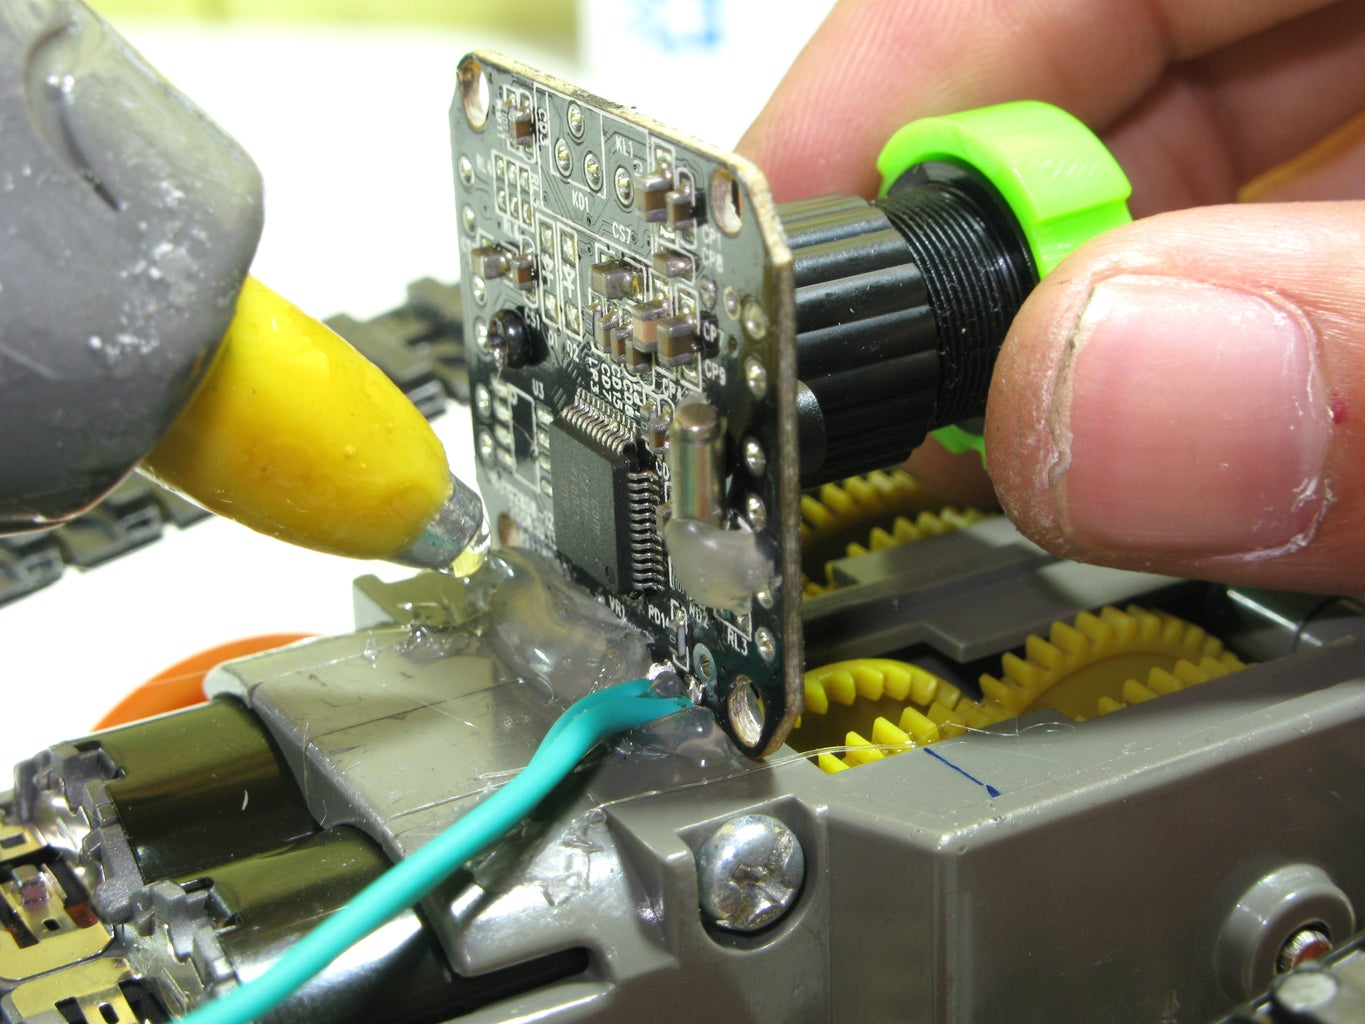 Mounting the IP Camera